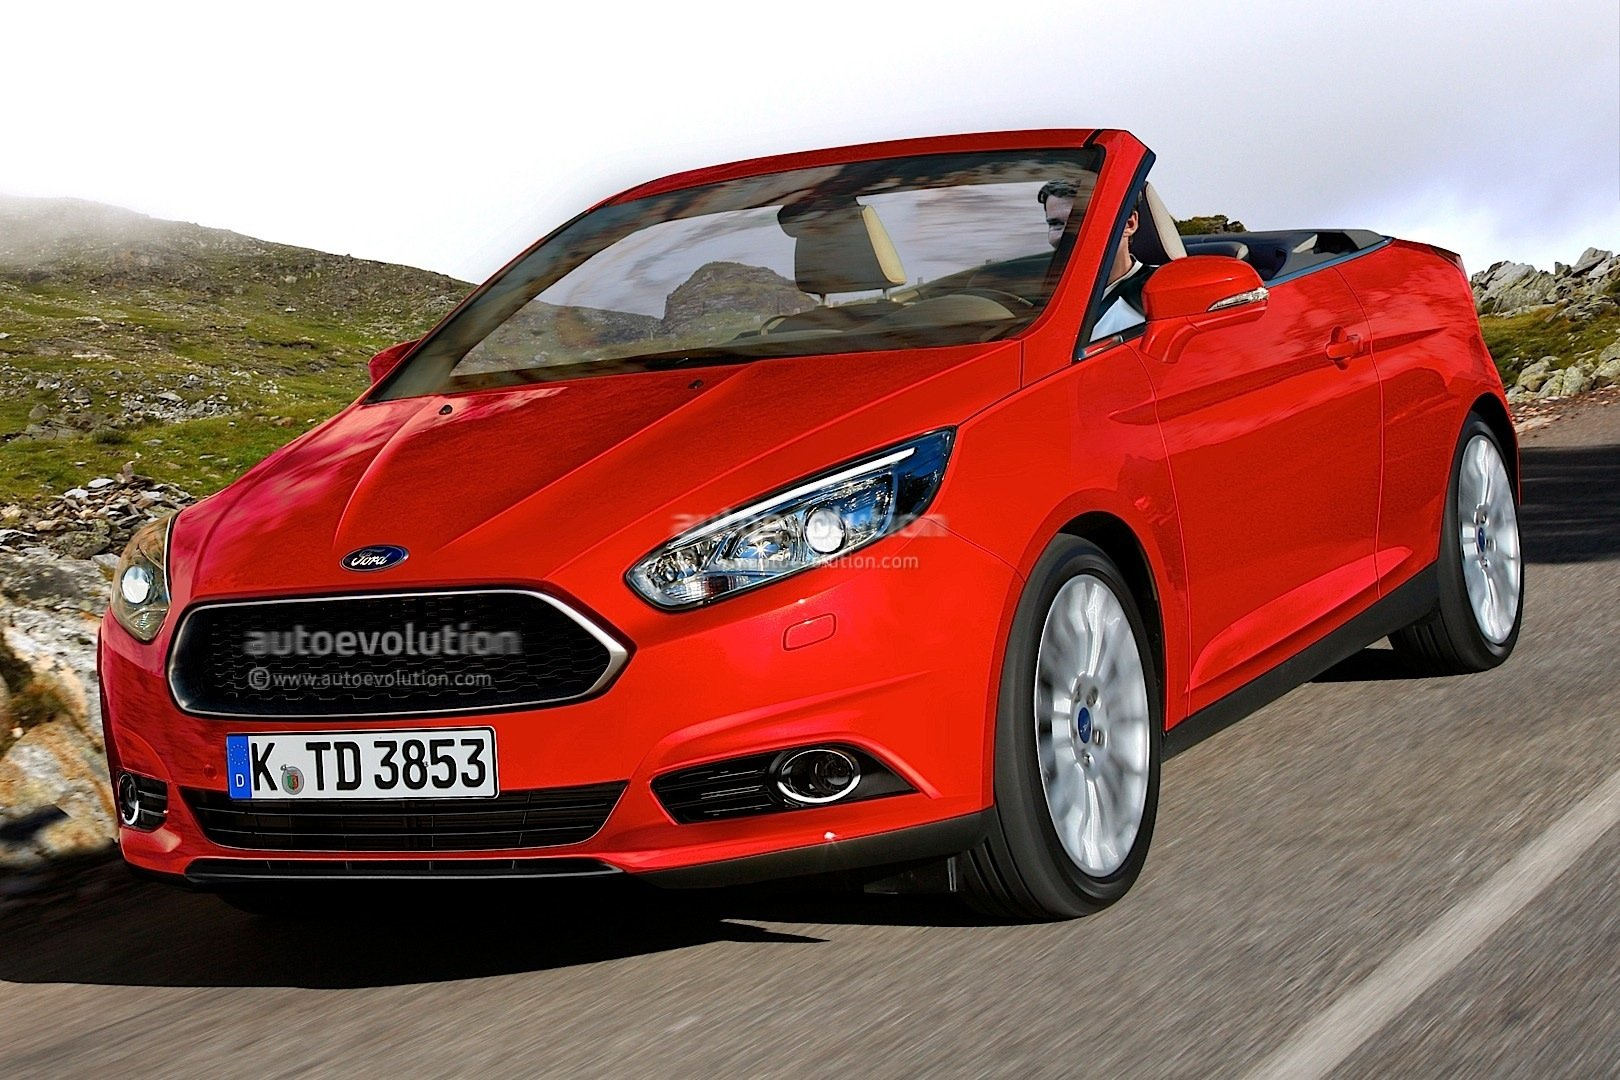 2014 ford focus coupe cabriolet ii pictures information and specs auto. Black Bedroom Furniture Sets. Home Design Ideas